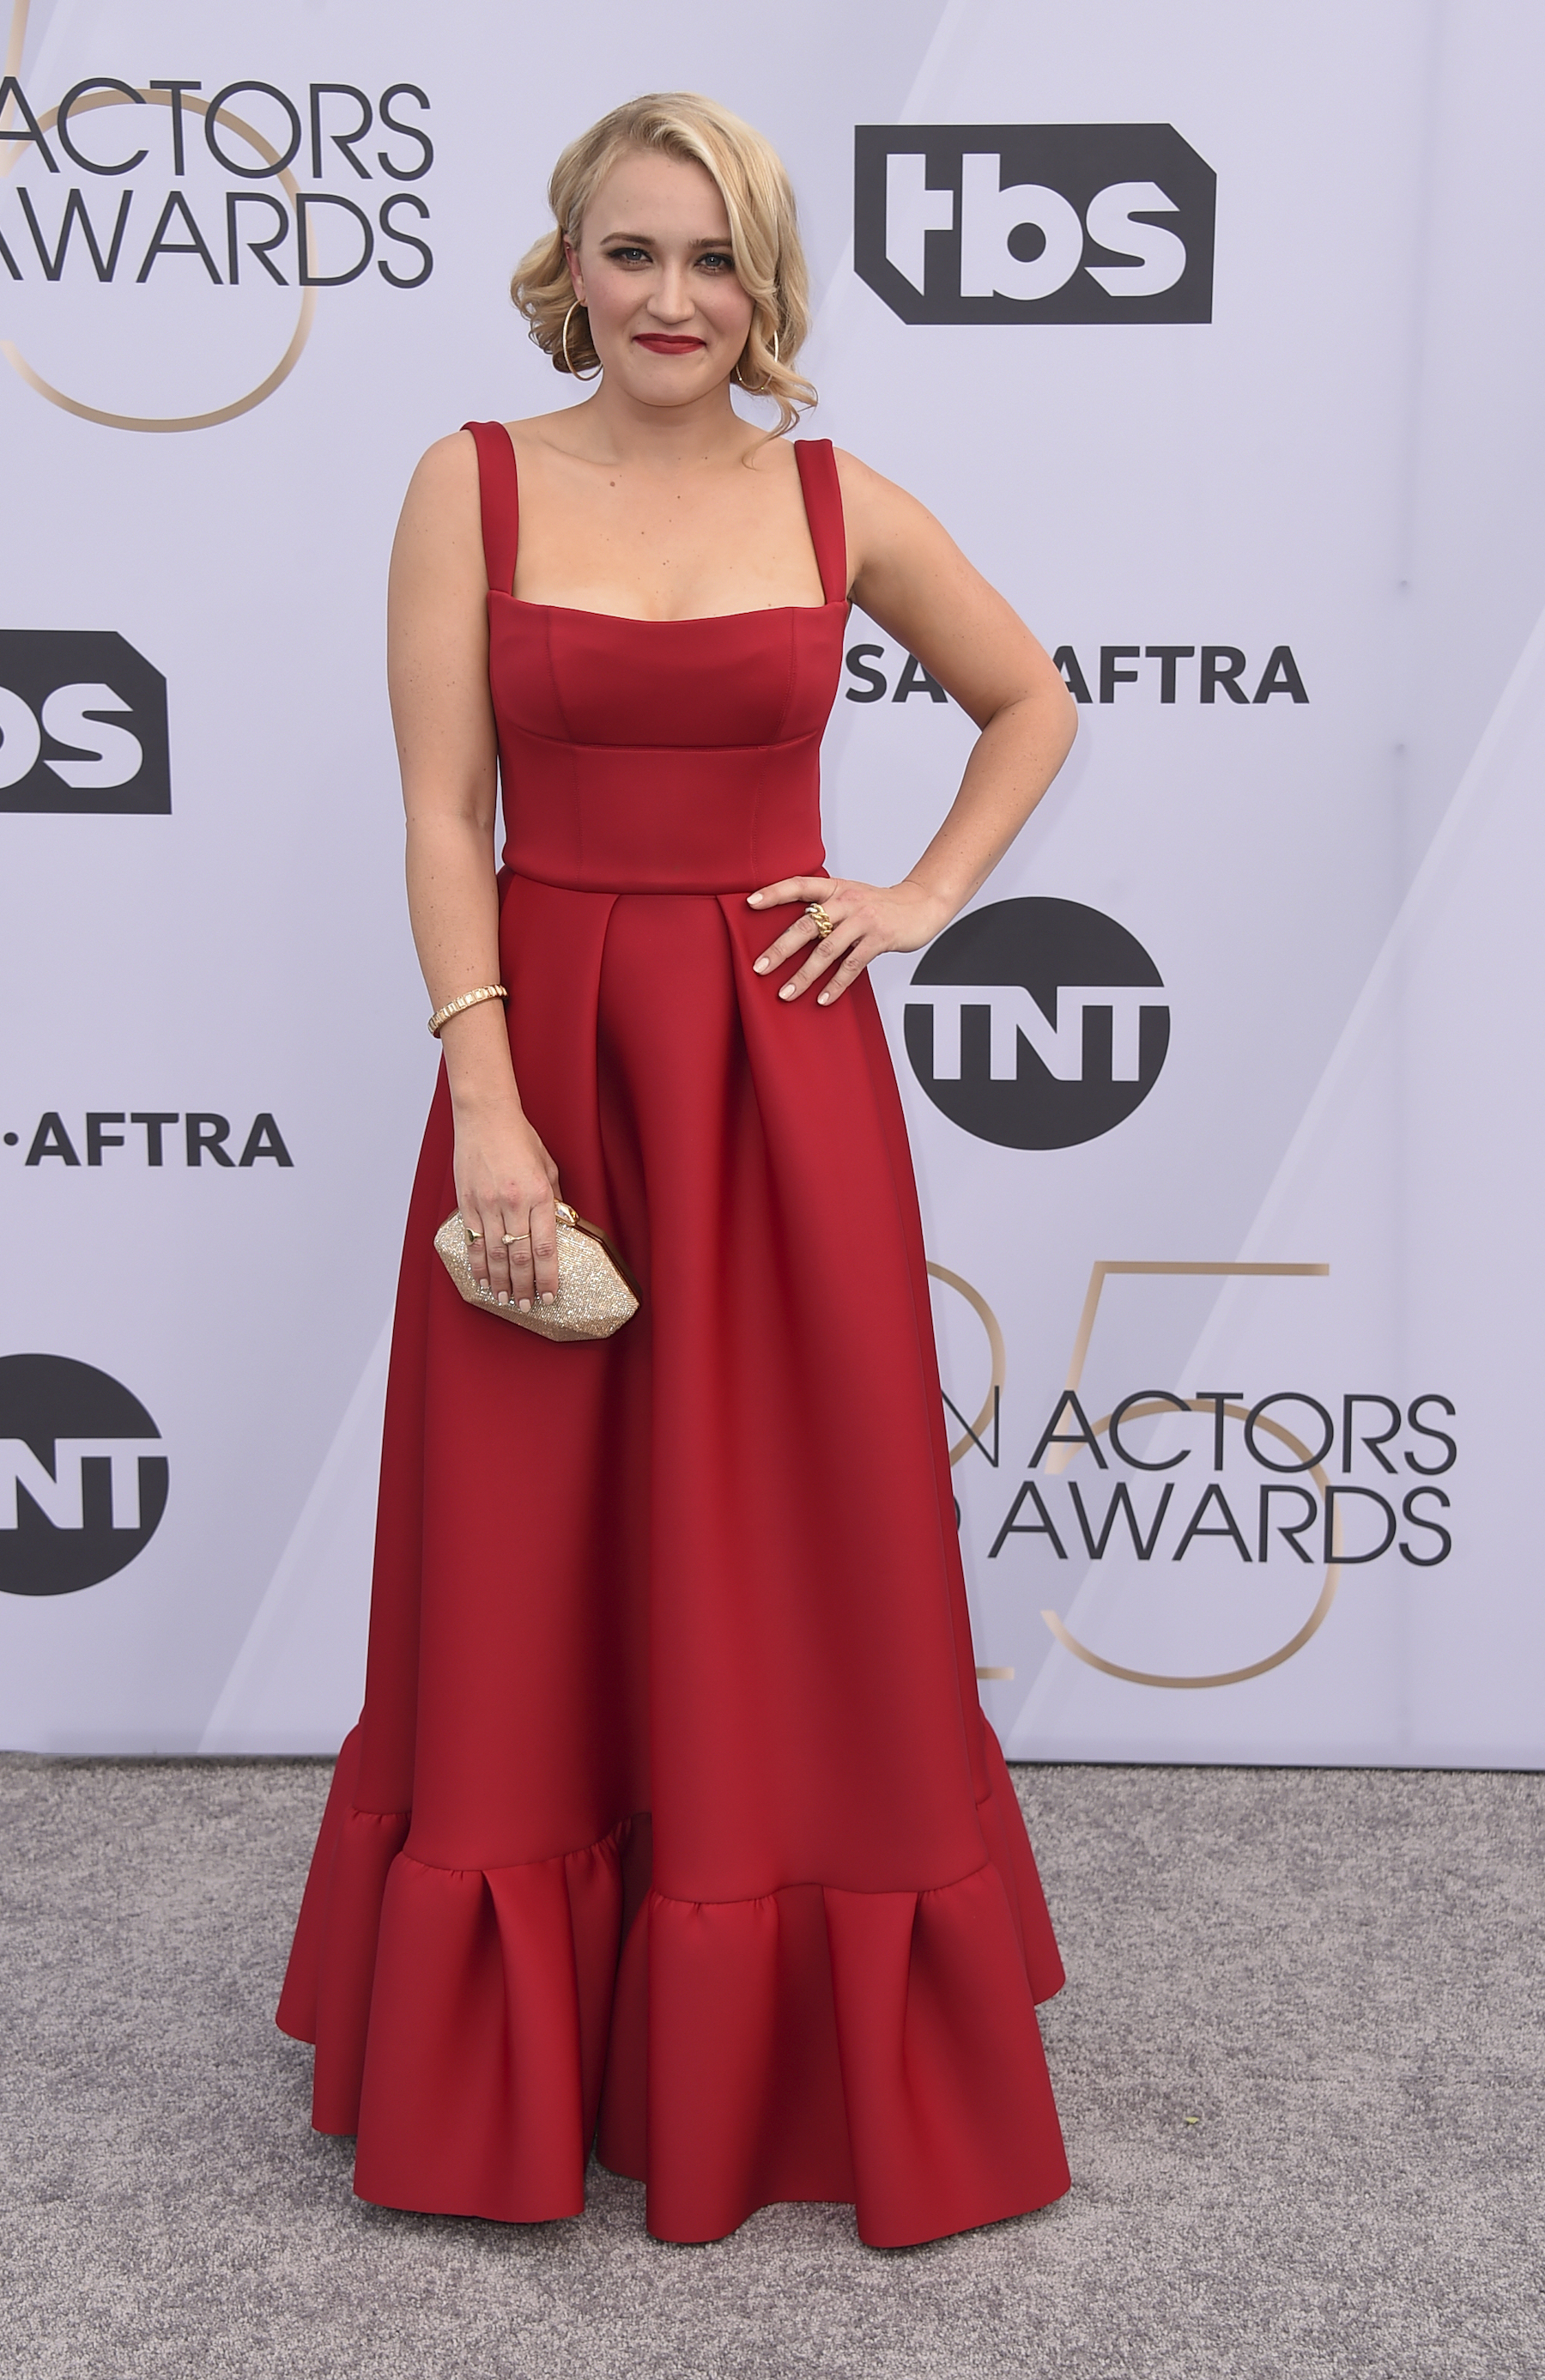 "<div class=""meta image-caption""><div class=""origin-logo origin-image ap""><span>AP</span></div><span class=""caption-text"">Emily Osment arrives at the 25th annual Screen Actors Guild Awards at the Shrine Auditorium & Expo Hall on Sunday, Jan. 27, 2019, in Los Angeles. (Jordan Strauss/Invision/AP)</span></div>"